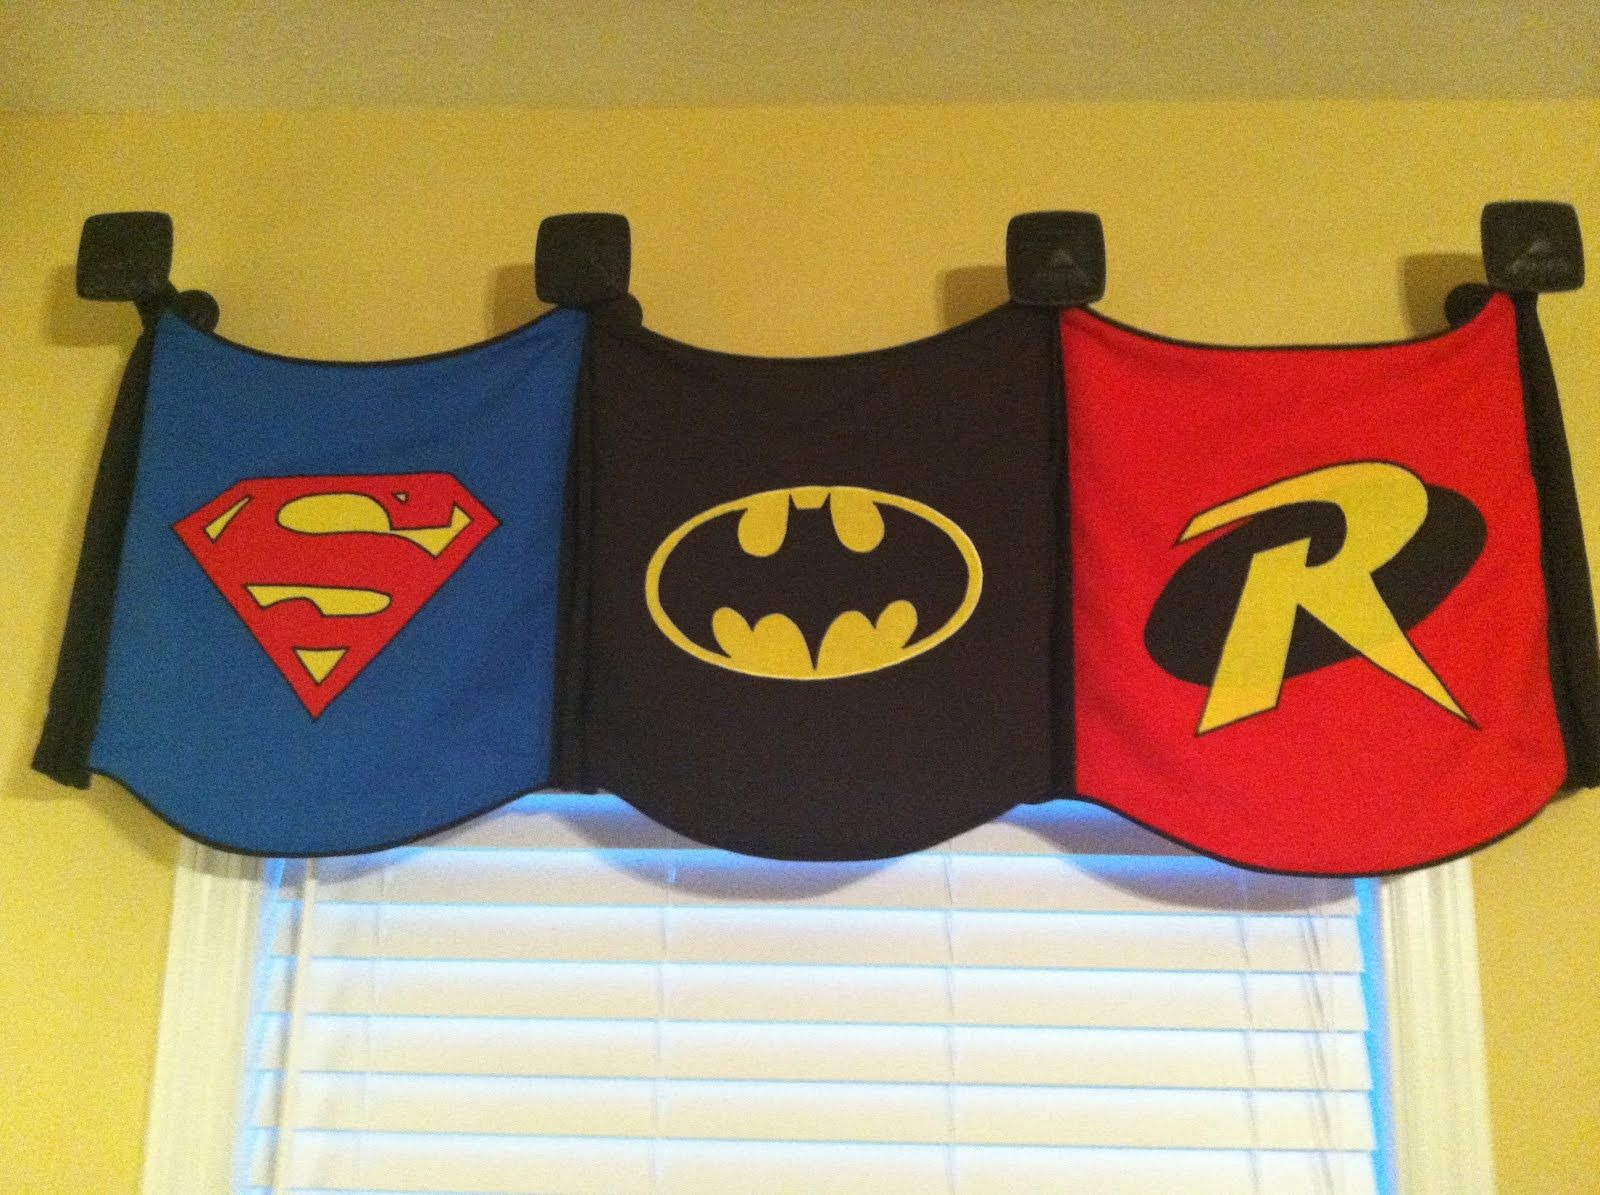 Toddler Boys Superhero Bedroom Ideas best 20+ superhero boys room ideas on pinterest | superhero room